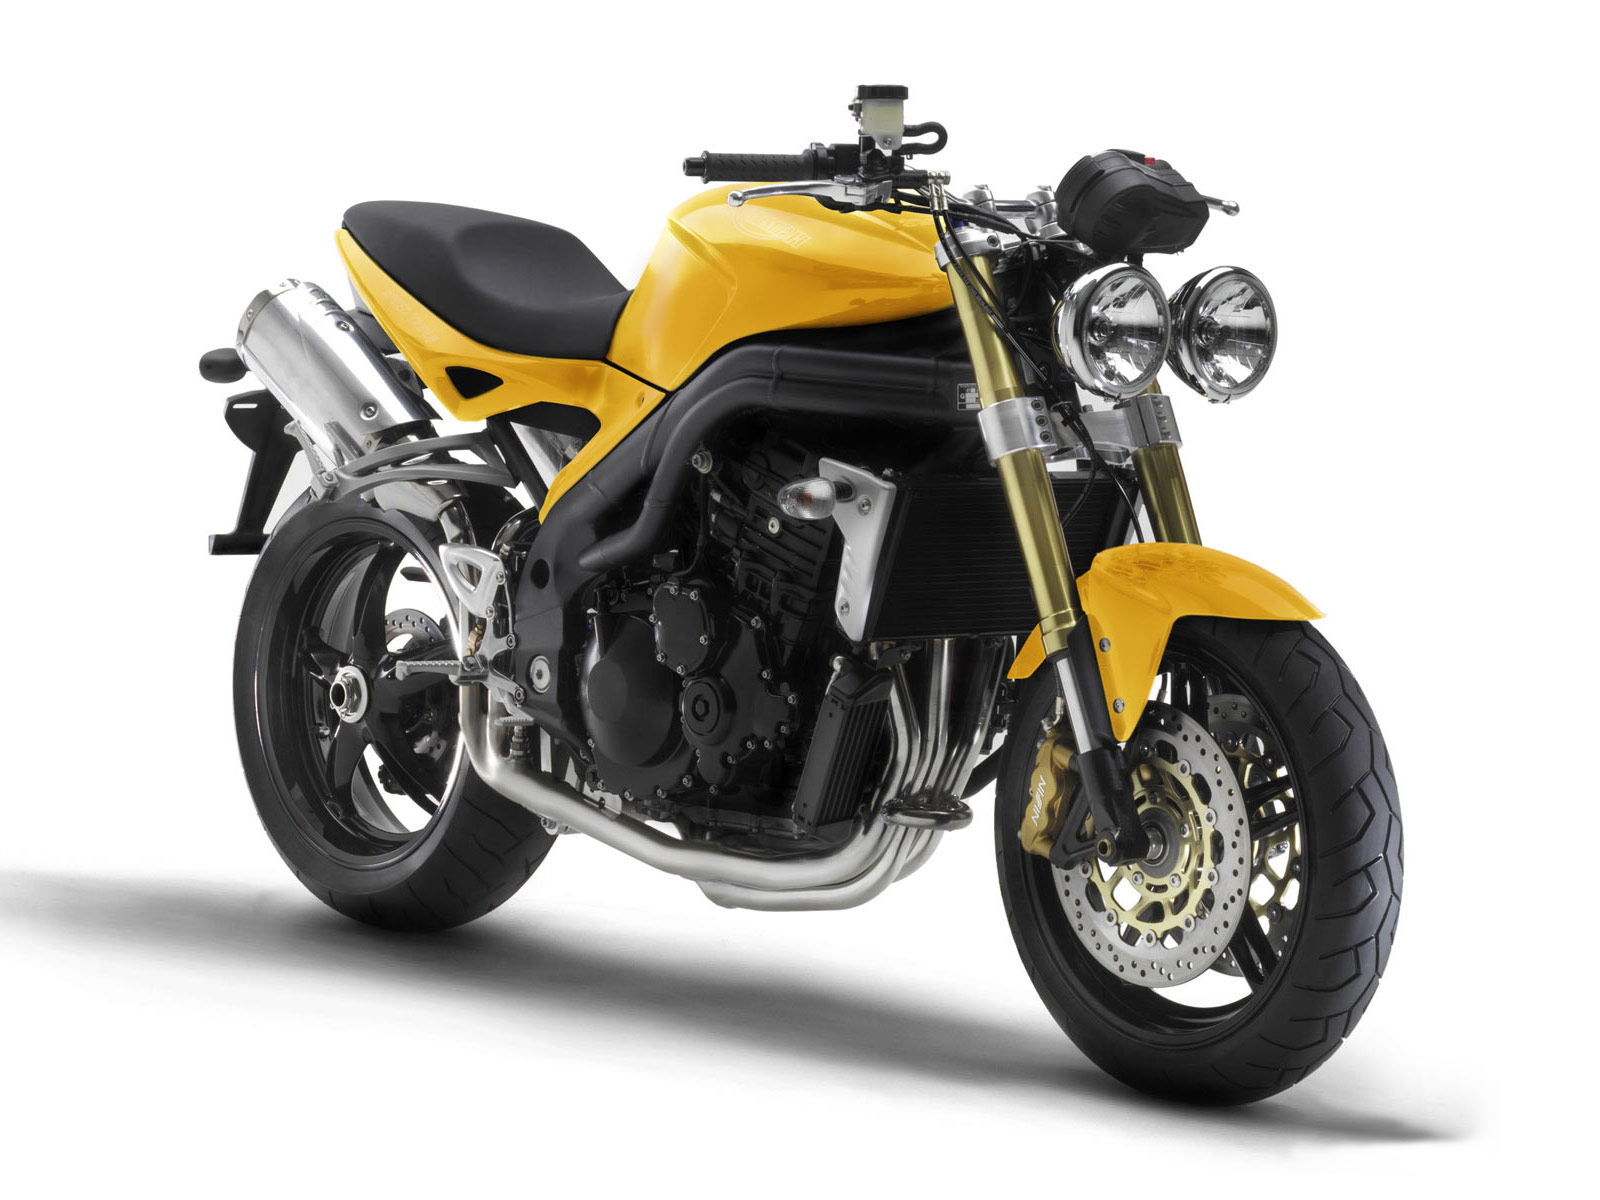 triumph speed triple 2005 pictures specs insurance informations. Black Bedroom Furniture Sets. Home Design Ideas